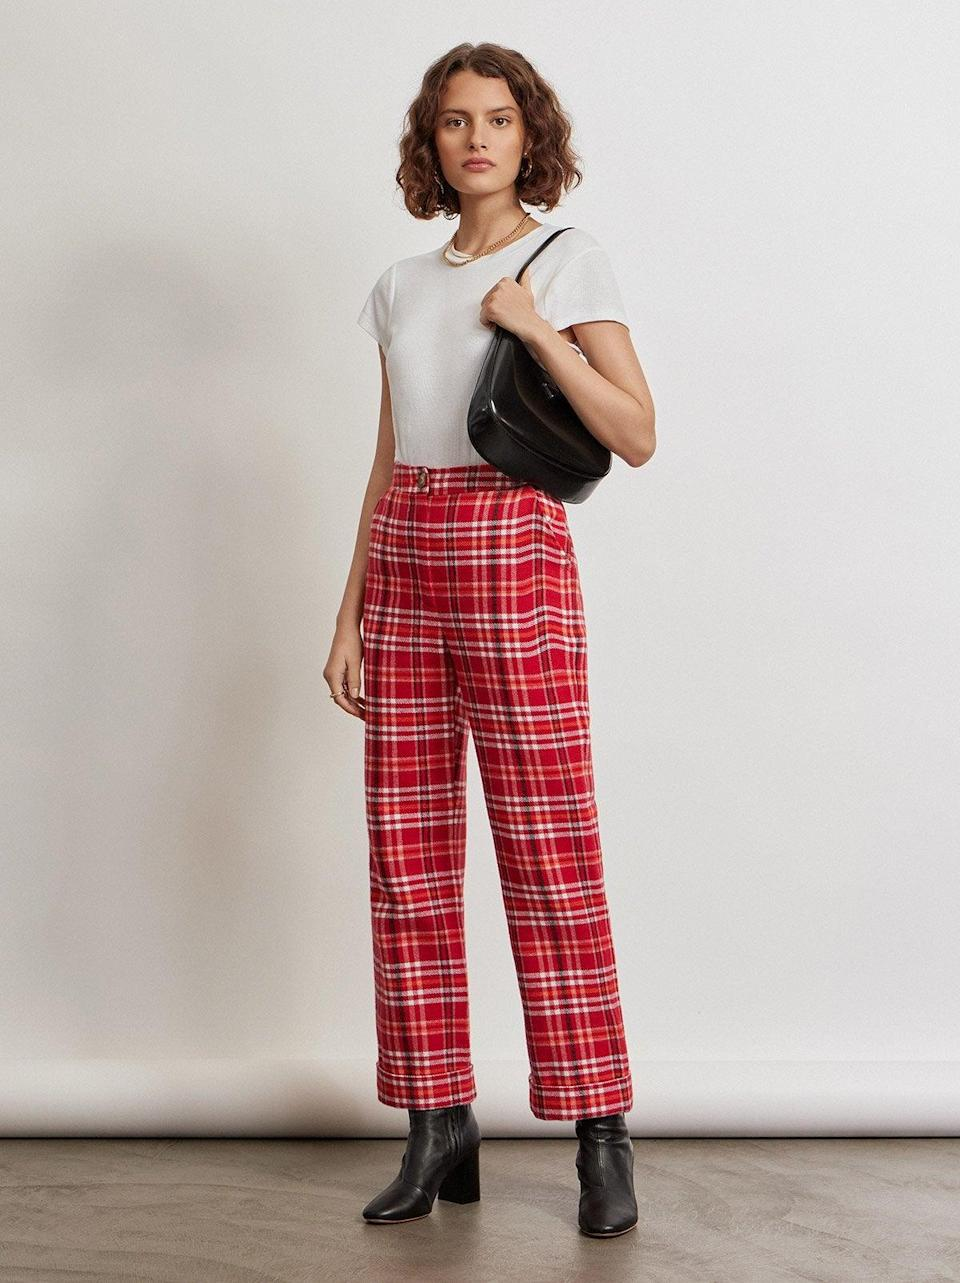 """<br><br><strong>Kitri x Jessie Bush</strong> Marissa Check Trousers, $, available at <a href=""""https://kitristudio.com/products/marissa-check-trousers?variant=39519990054963"""" rel=""""nofollow noopener"""" target=""""_blank"""" data-ylk=""""slk:Kitri"""" class=""""link rapid-noclick-resp"""">Kitri</a>"""